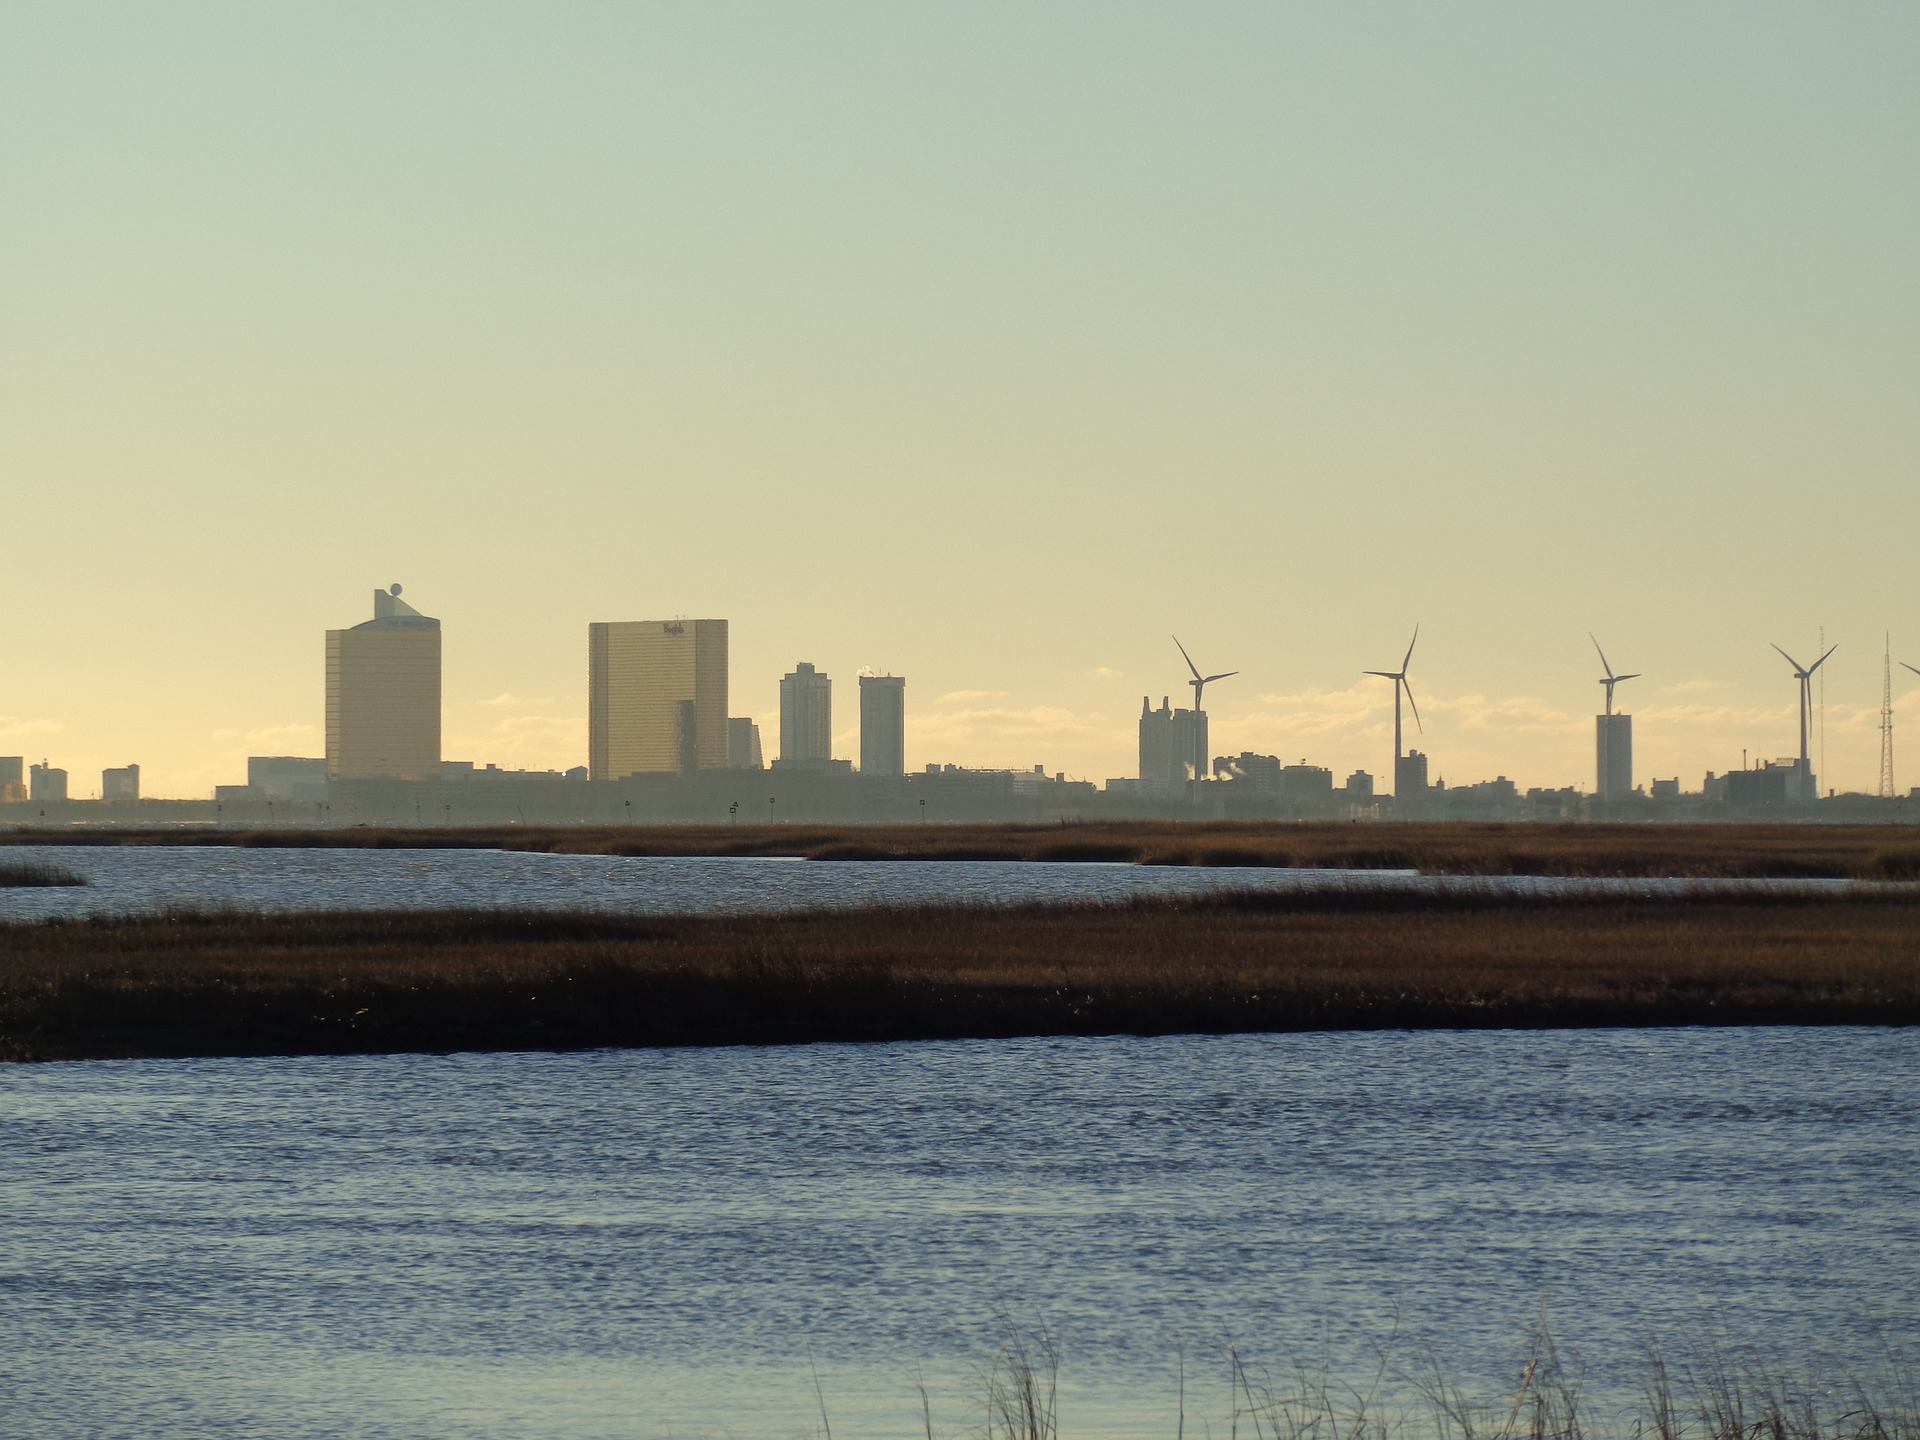 New Jersey Slot Machine Casino Gambling and Atlantic City with water and windmills.